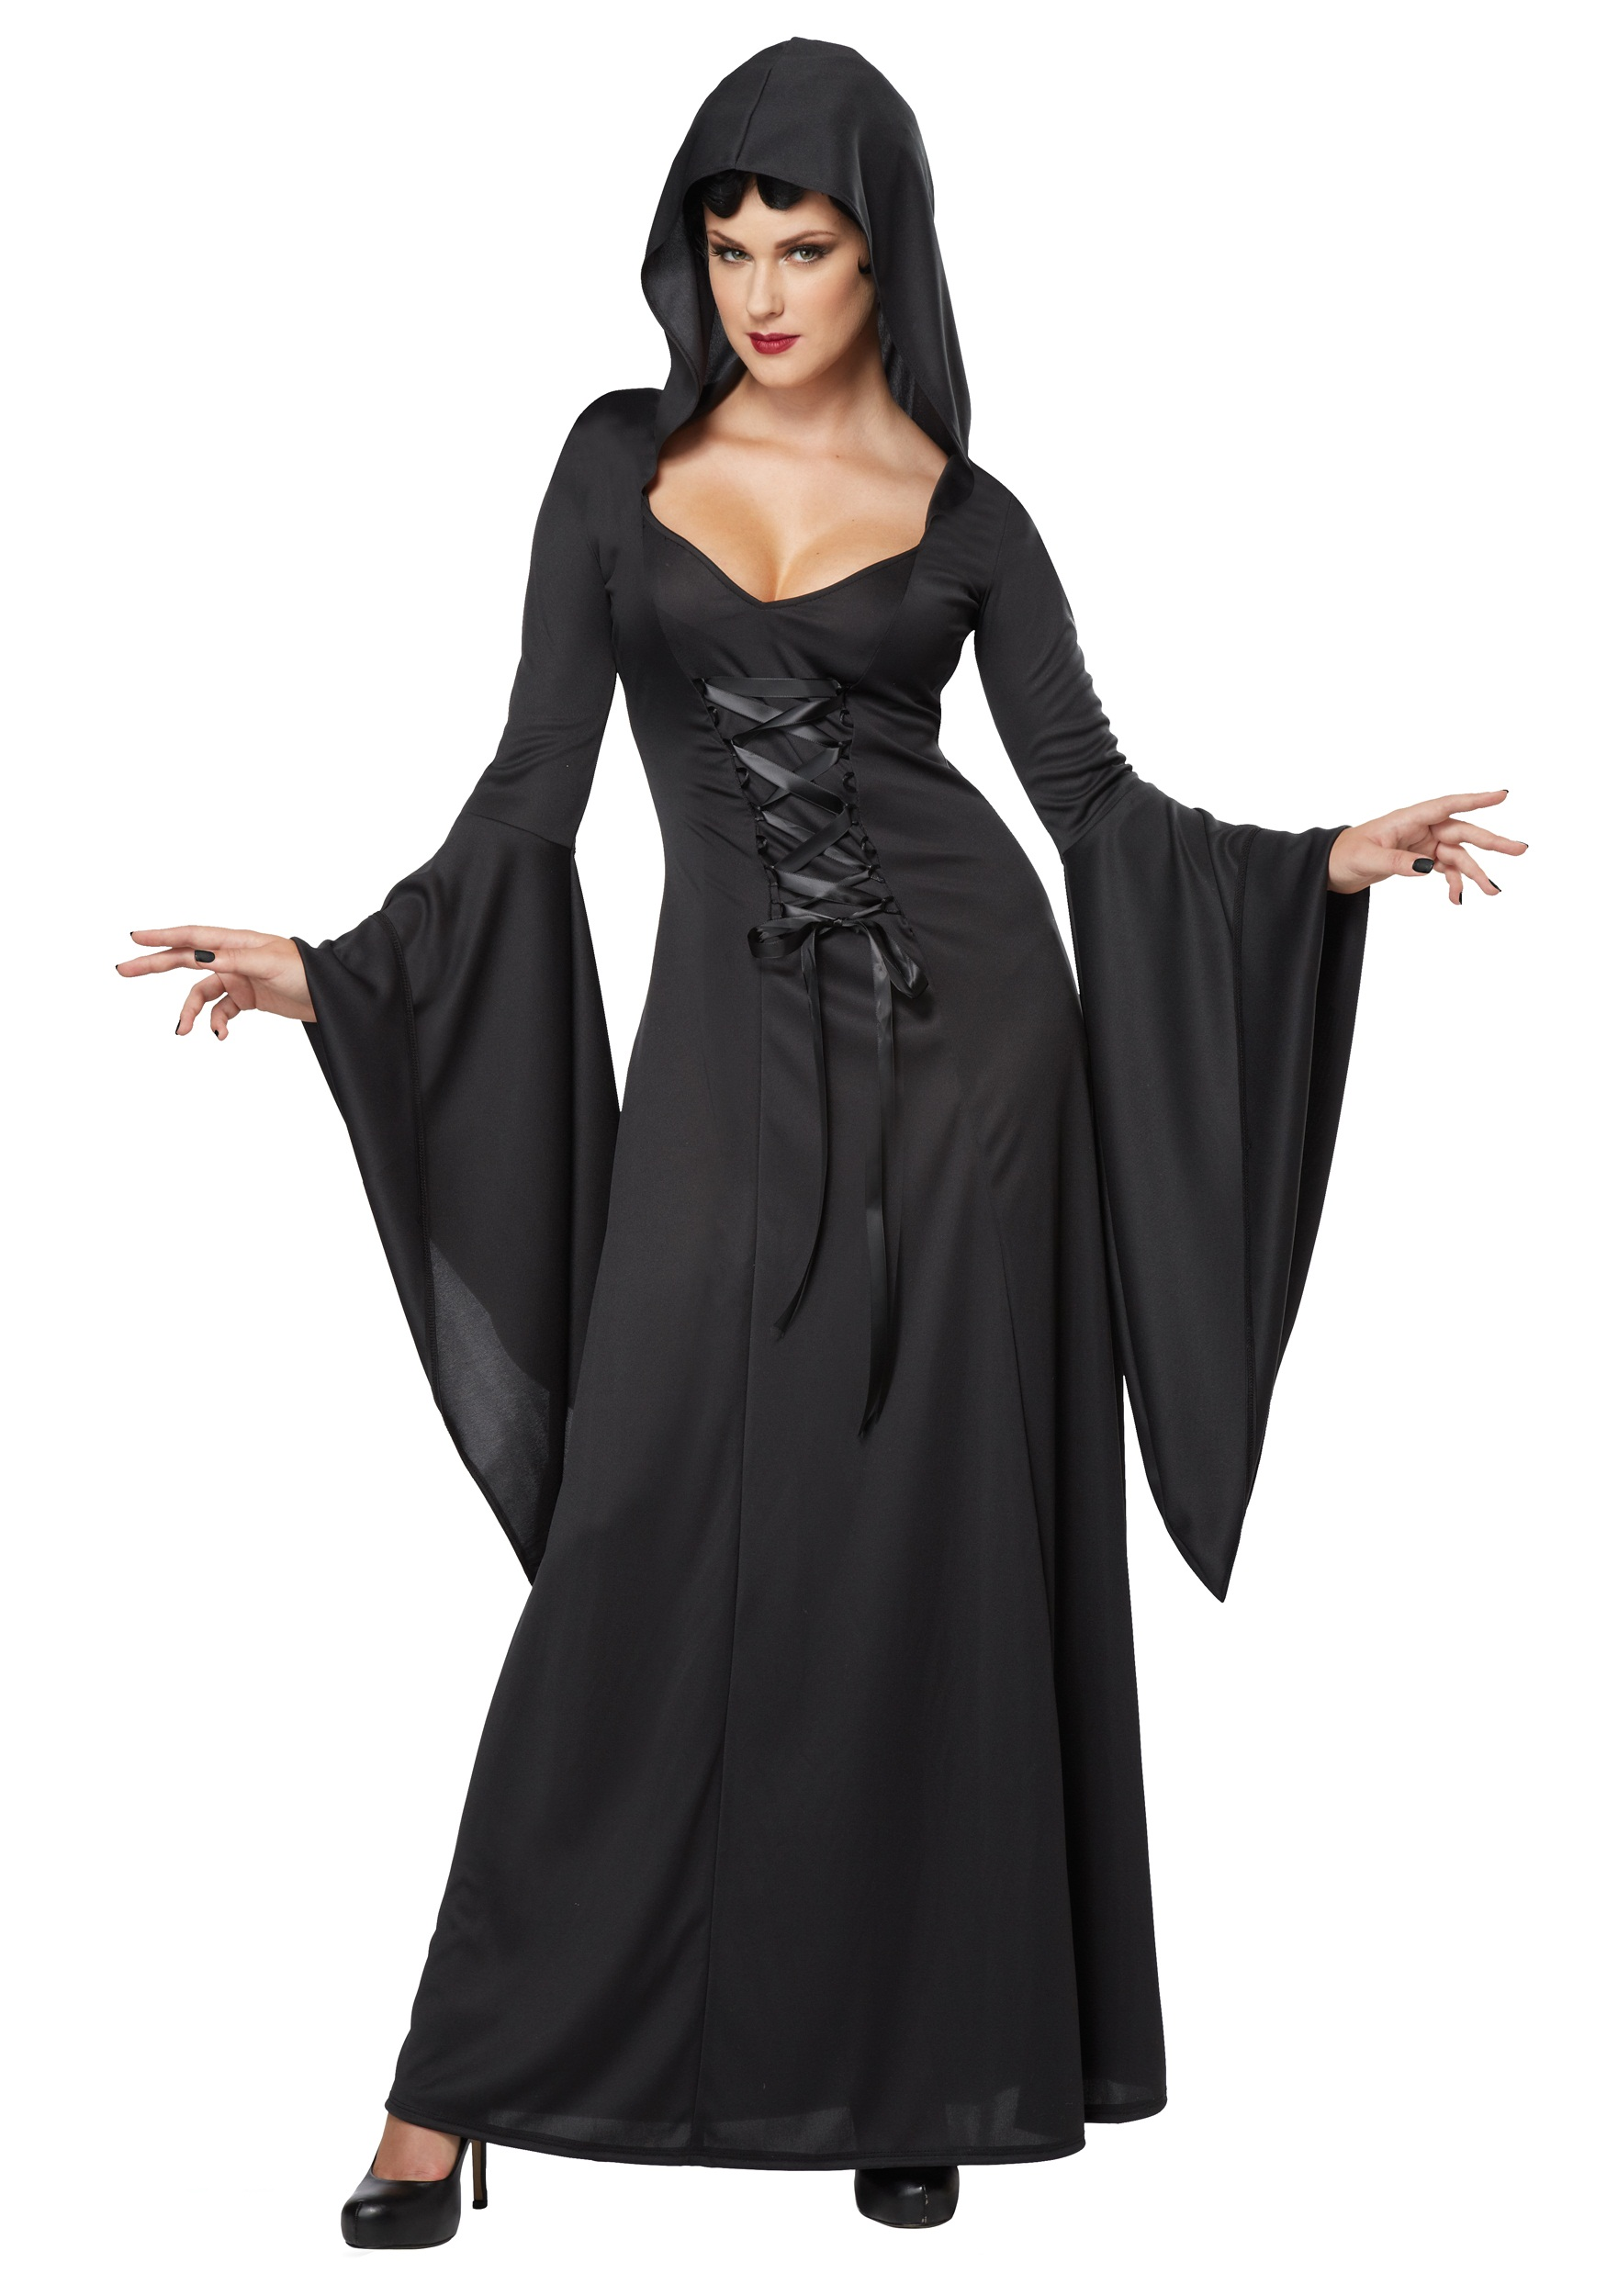 Women's Hooded Black Lace Up Robe